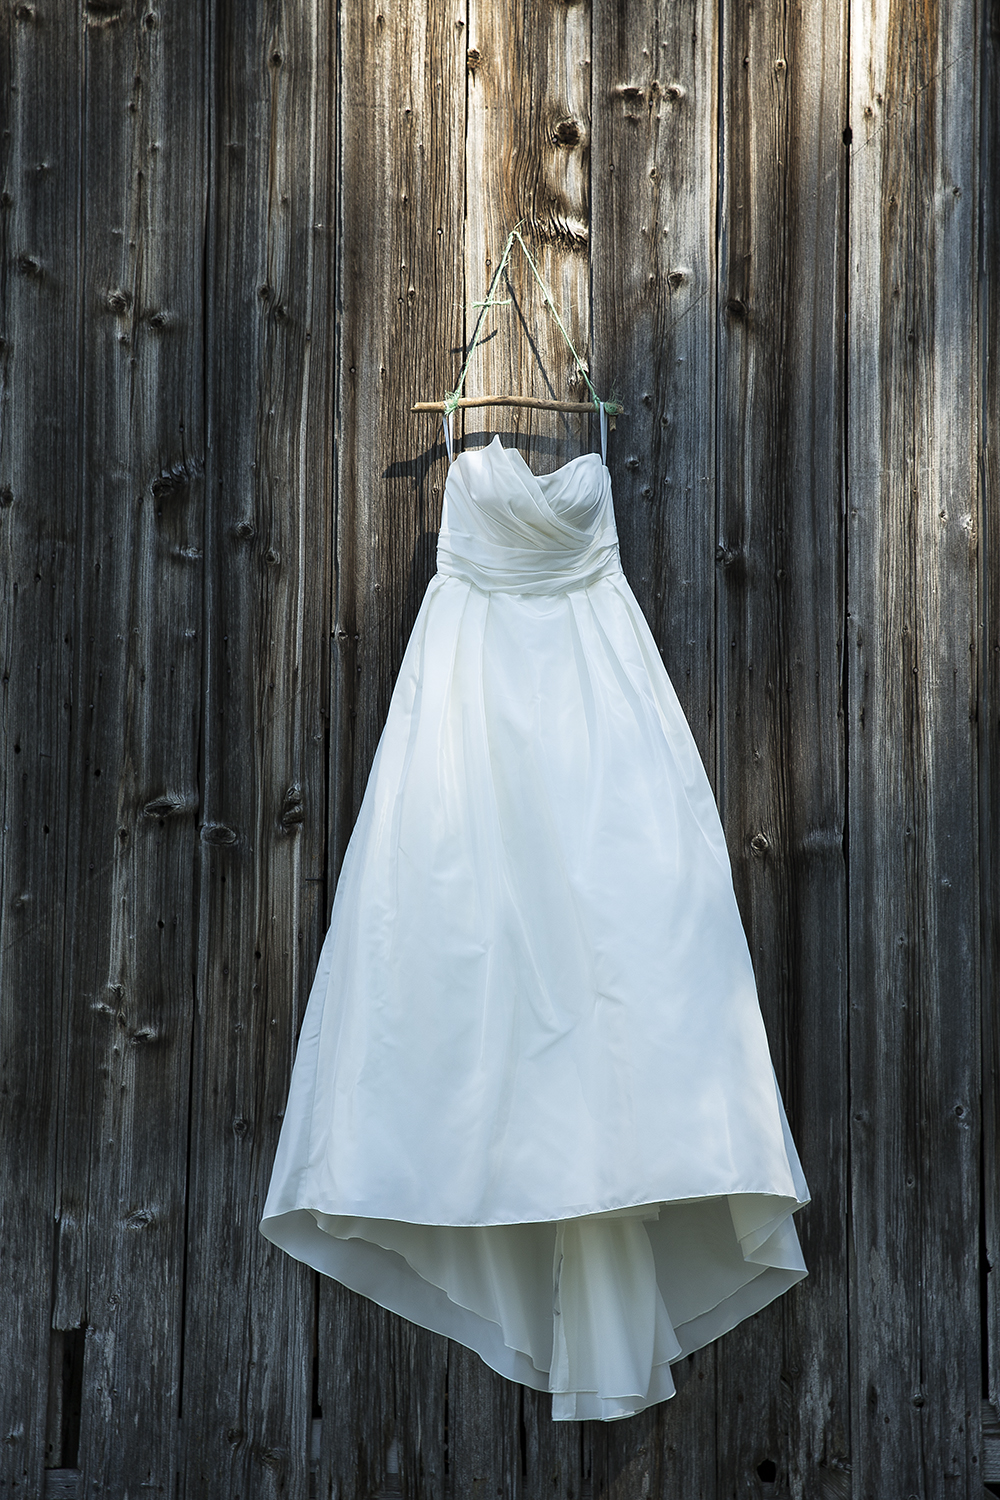 barn wedding dress.jpg